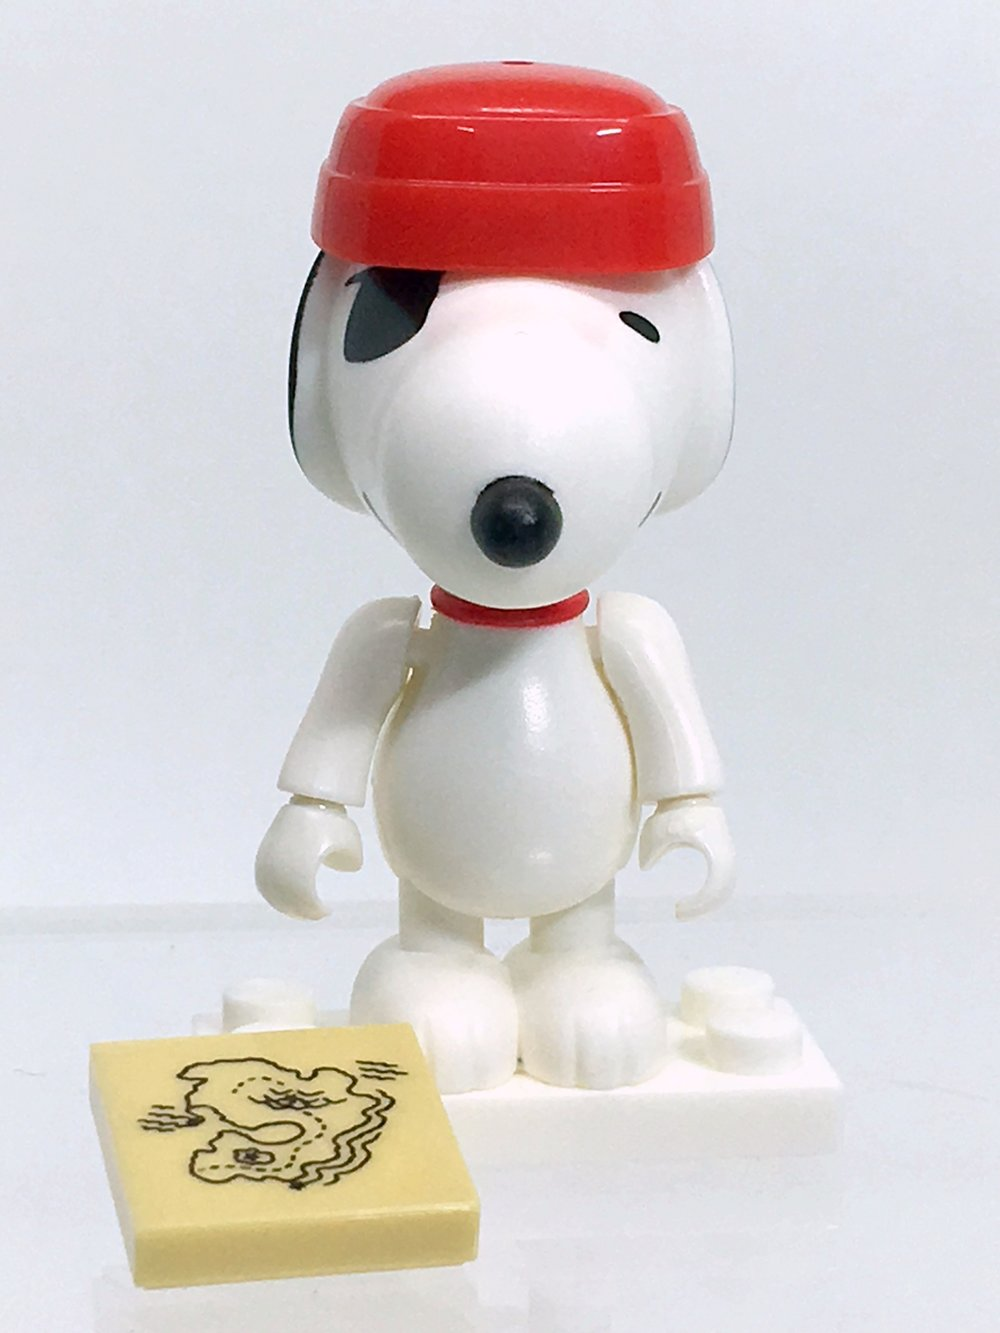 BB Licensed Shop Shop 113A, D2 Place ONE i) 全店產品九折 ii) 消費滿HK$500即送SNOOPY FIGURINE乙隻 Period: Dec 1 - 25, 2017